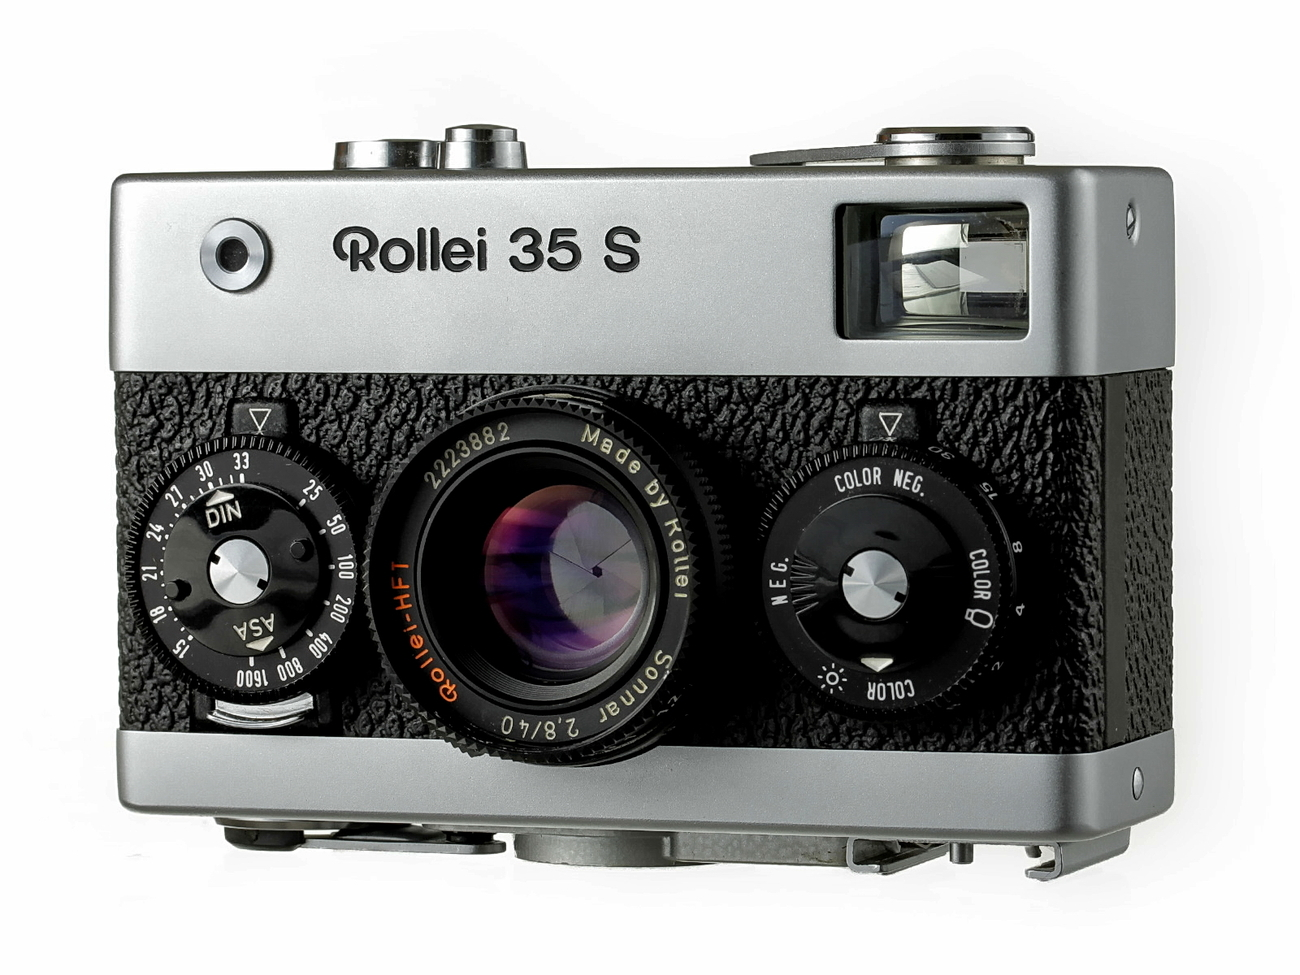 Rollei 35 S 35mm Camera Sonnar Lens u0026 121BC Flash Mint - Film Cameras